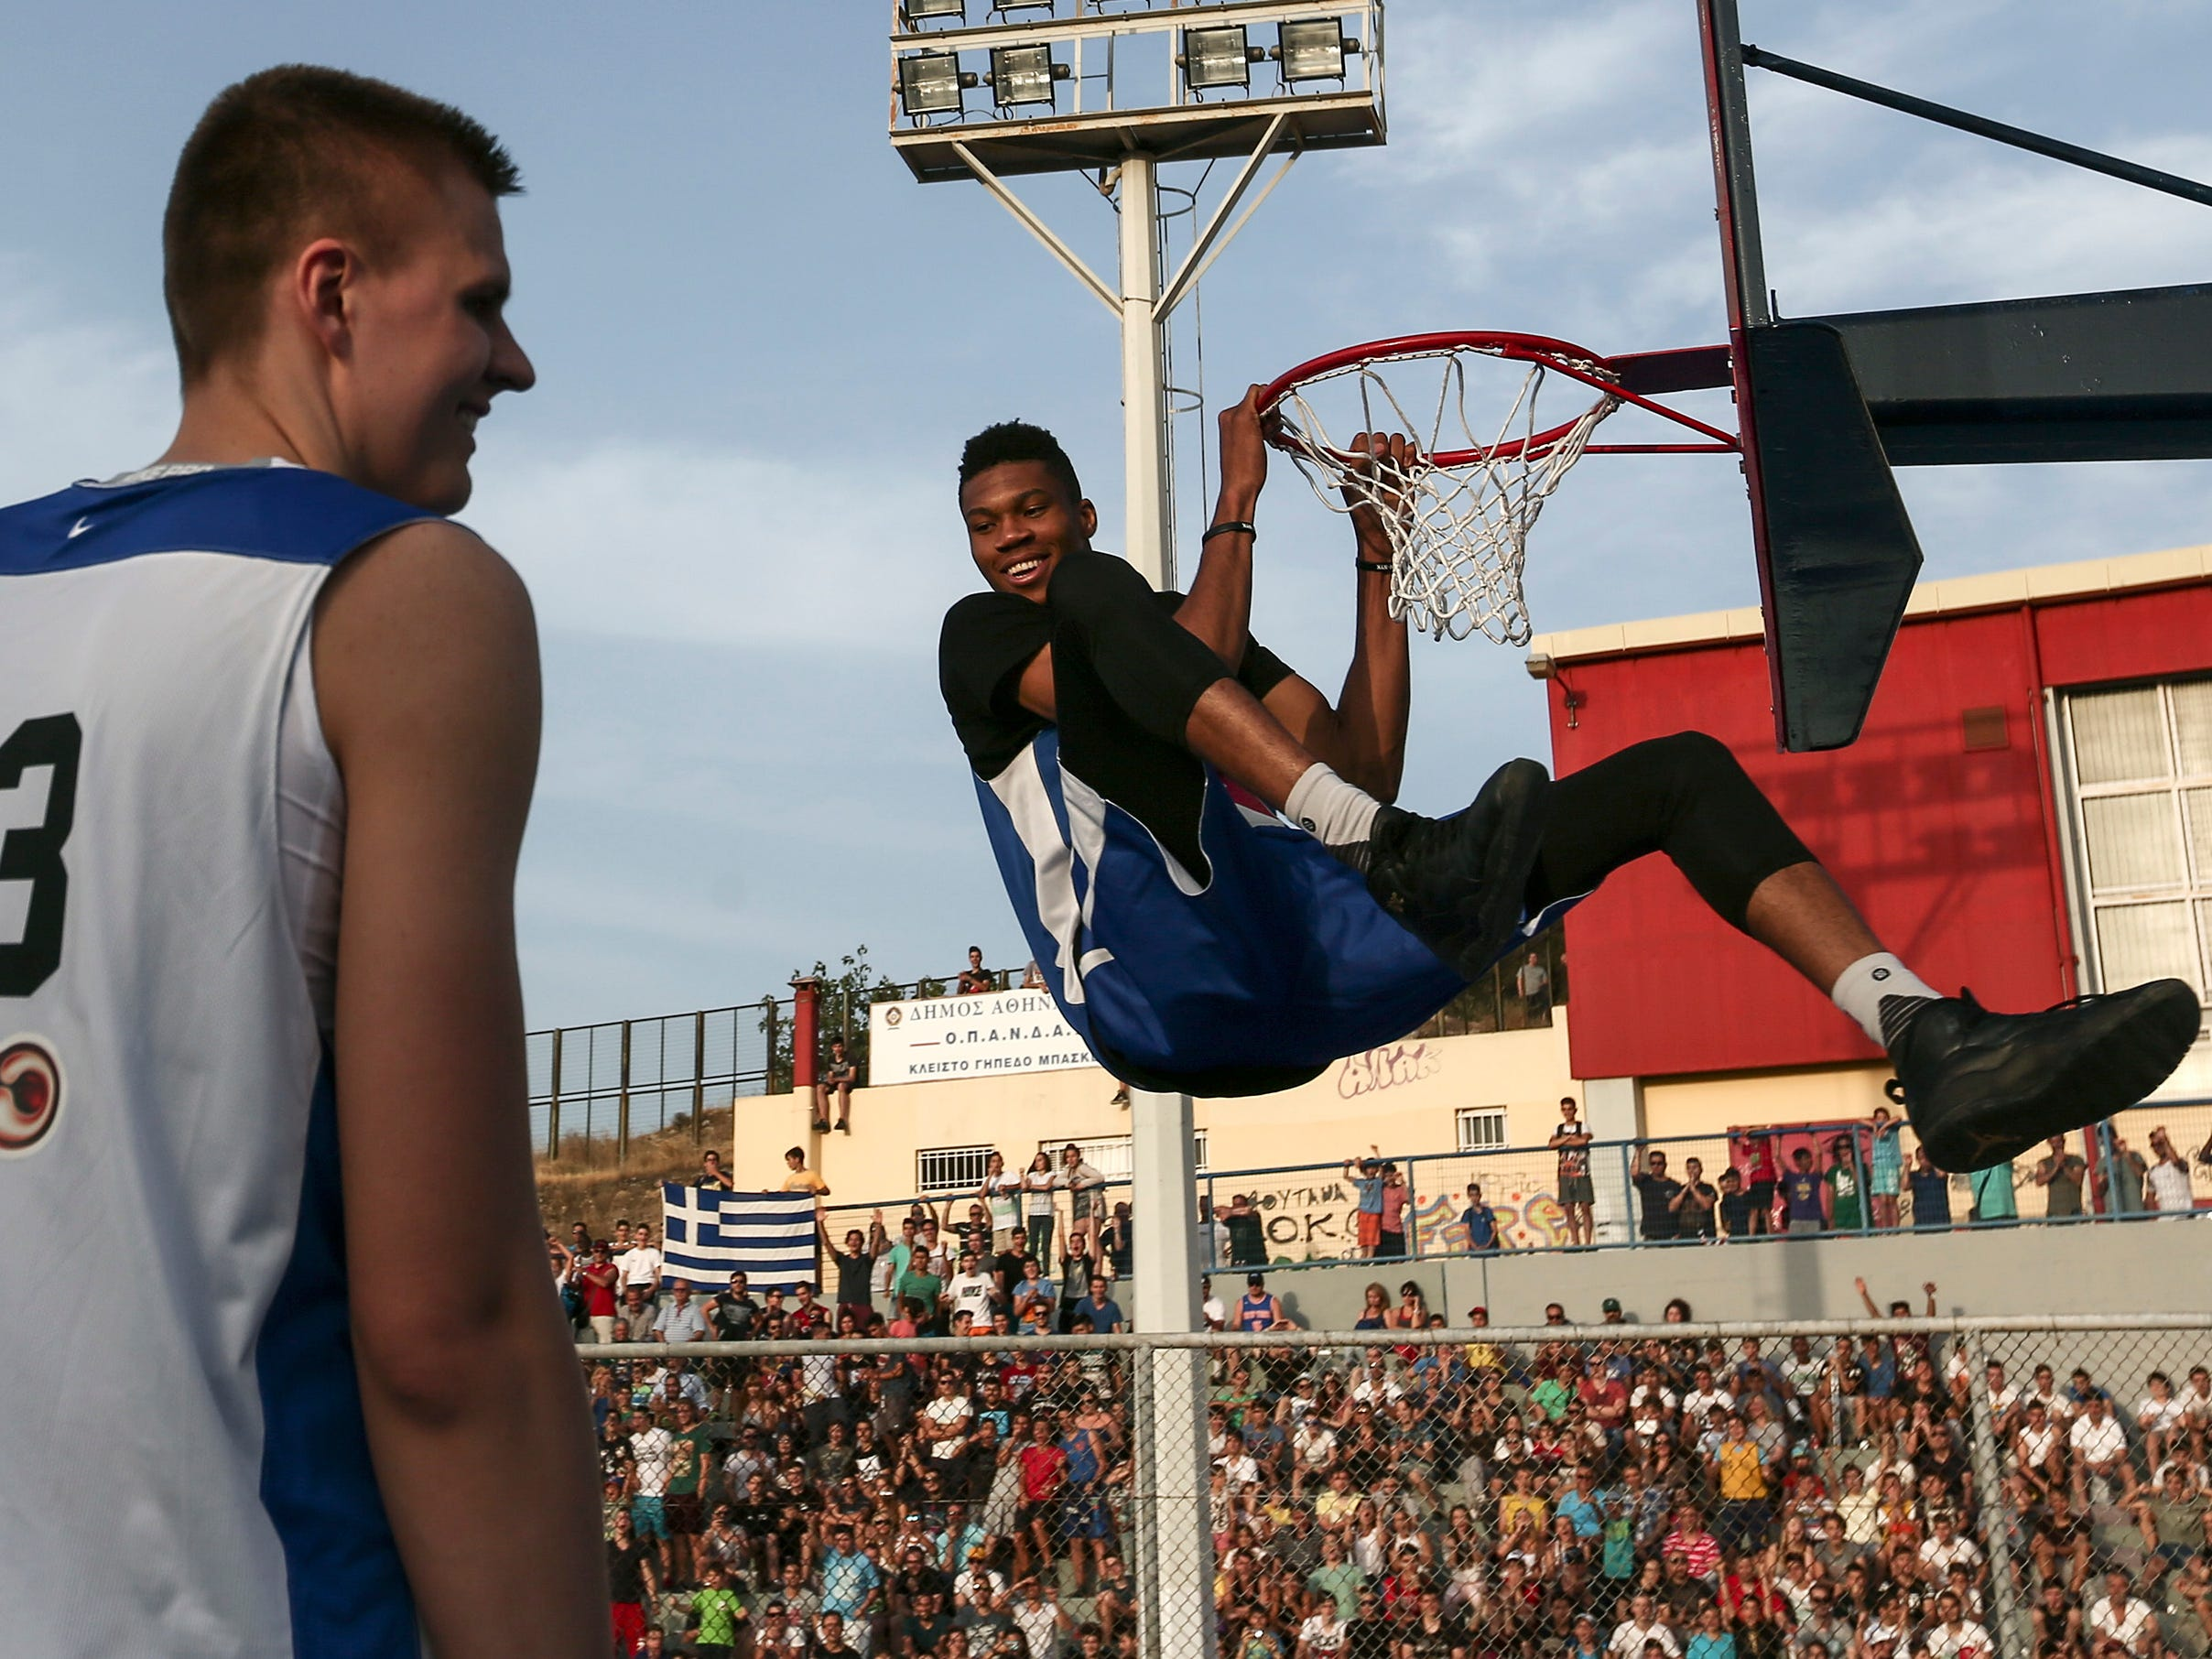 Antetokounmpo joins fellow budding star Kristaps Porzingis for a charity streetball event in his native Athens in 2016.